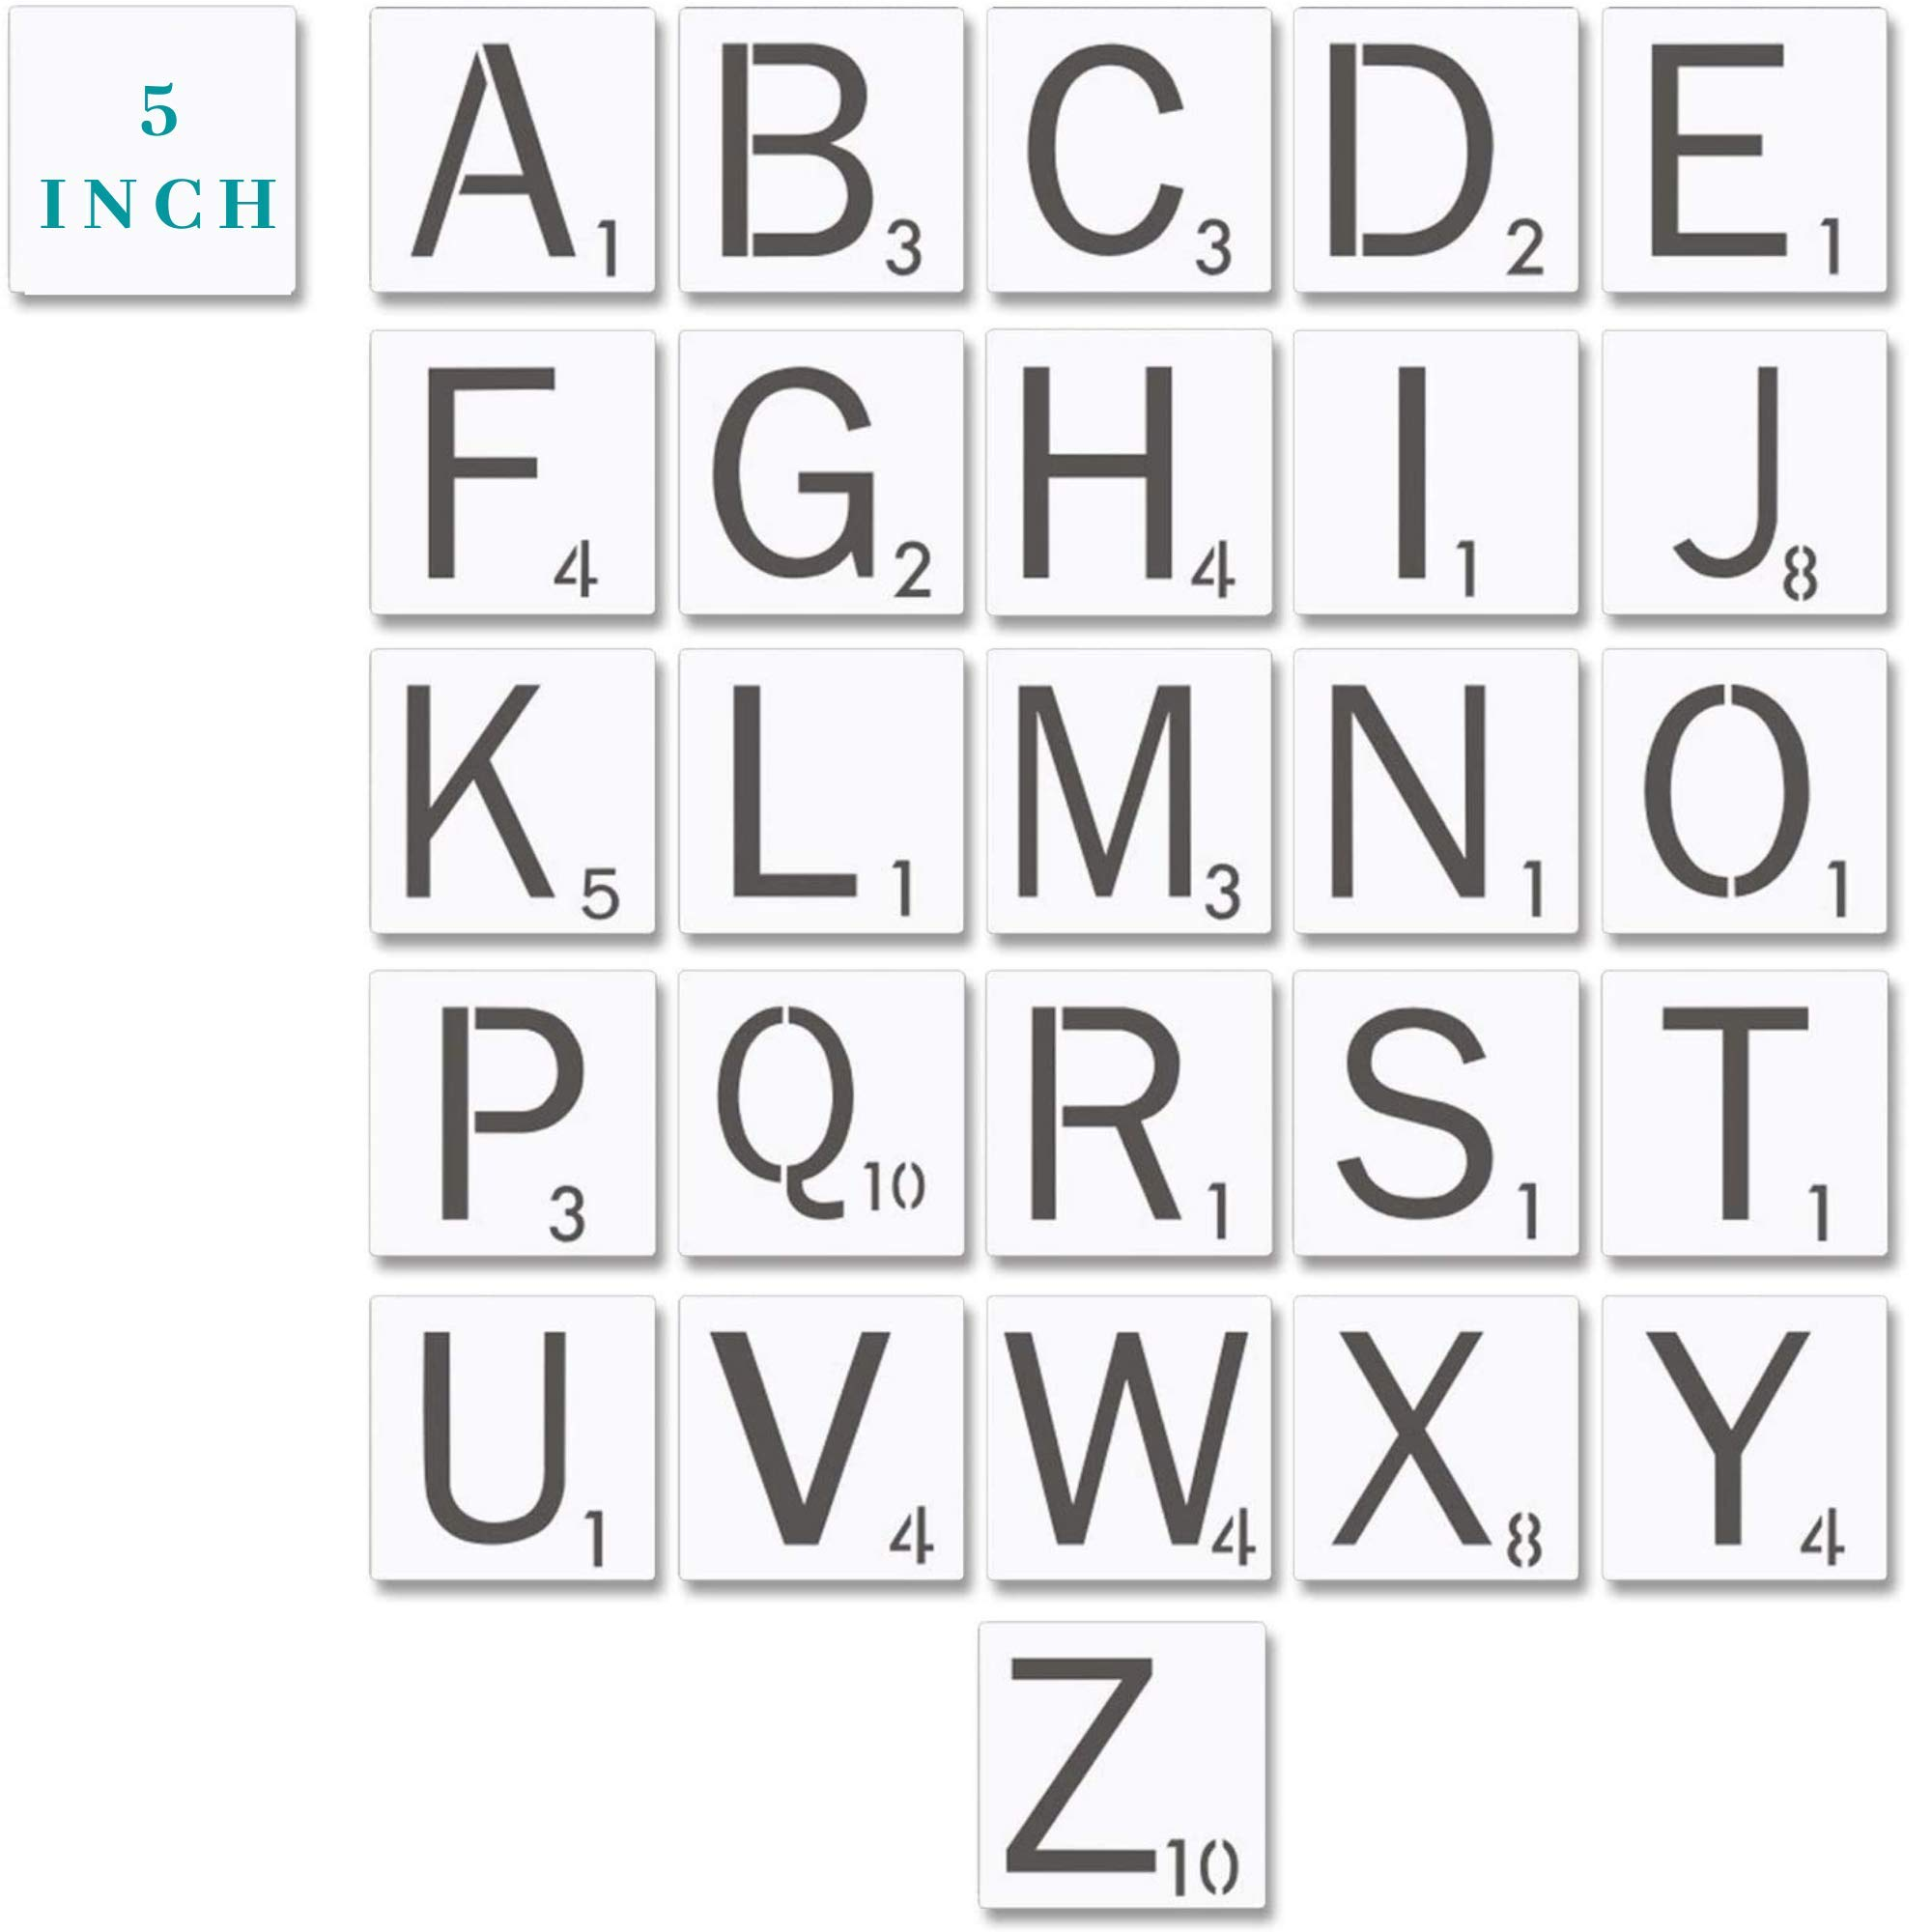 """Scrabble Style Stencil Alphabet Large Letter Stencils - 5 Inch 18 Mil Mylar Stencil Template for Tile Wall Decor Art   5x5 INCH Stencil   3.75"""" INCH Letters   Thick, Durable, and Multi-Use"""